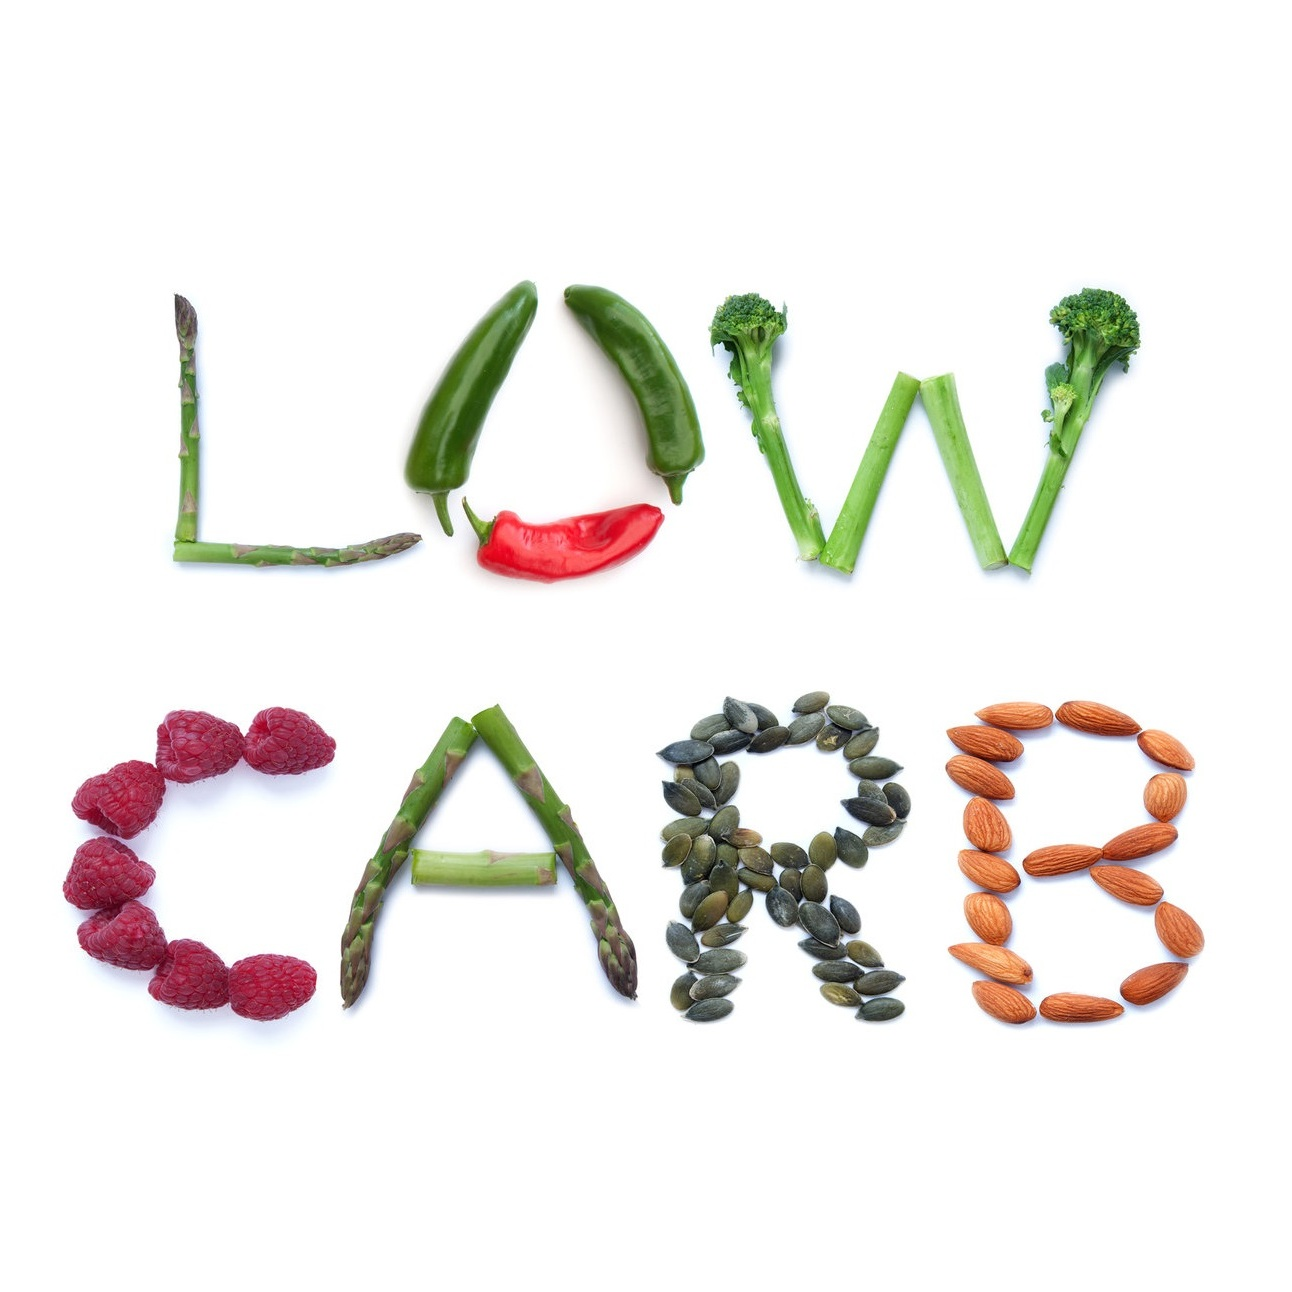 What Are The Benefits Of A Low Carb Diet? -